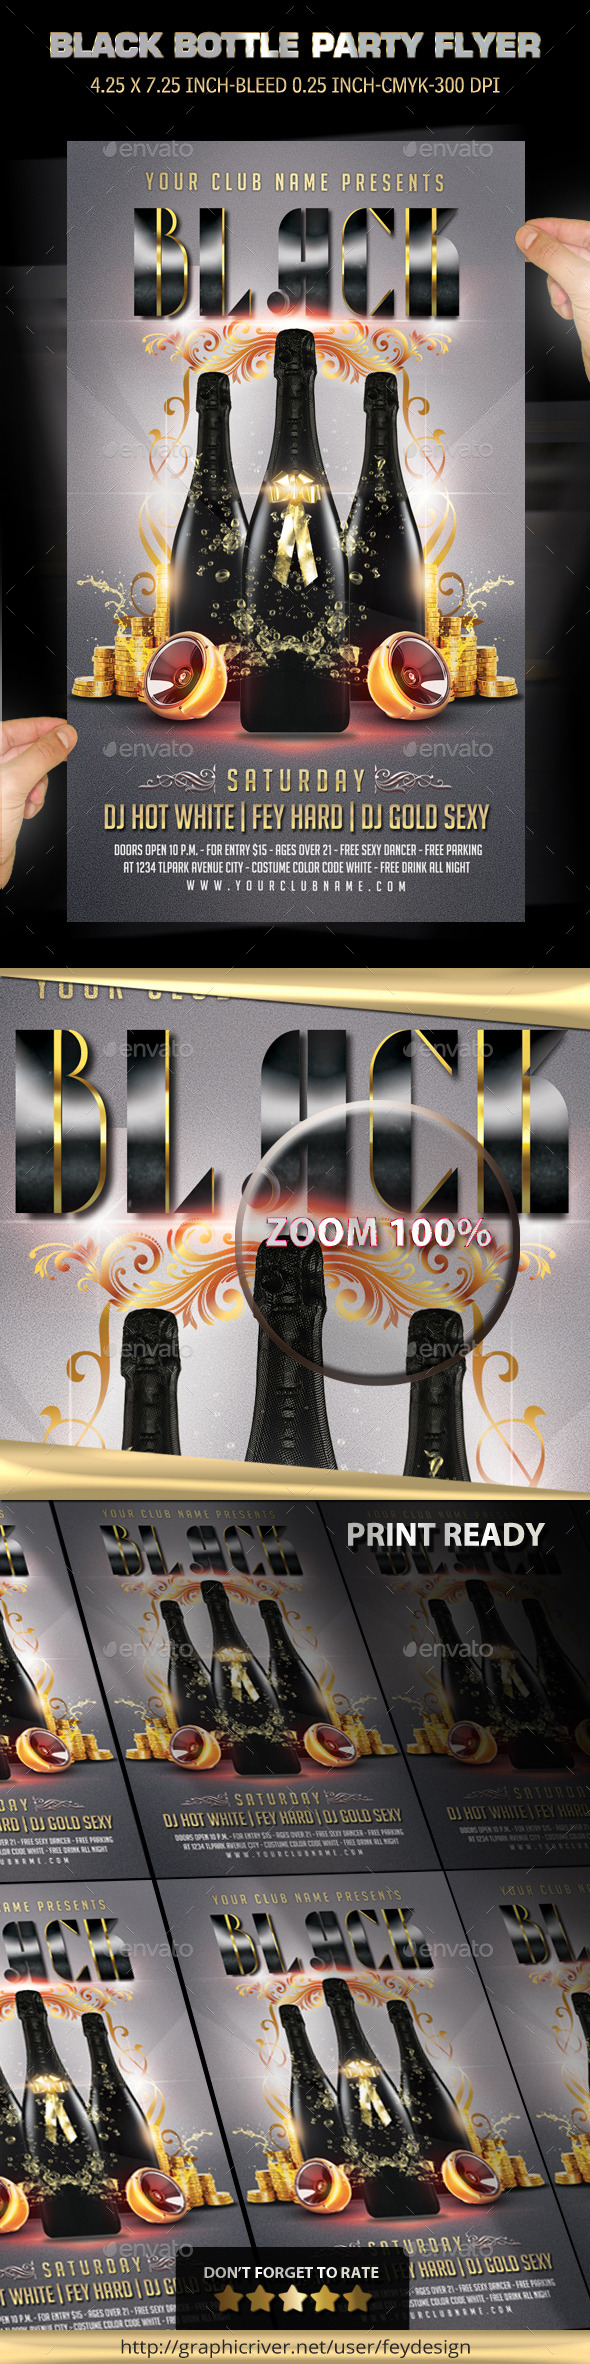 Black Bottle Party Flyer - Clubs & Parties Events